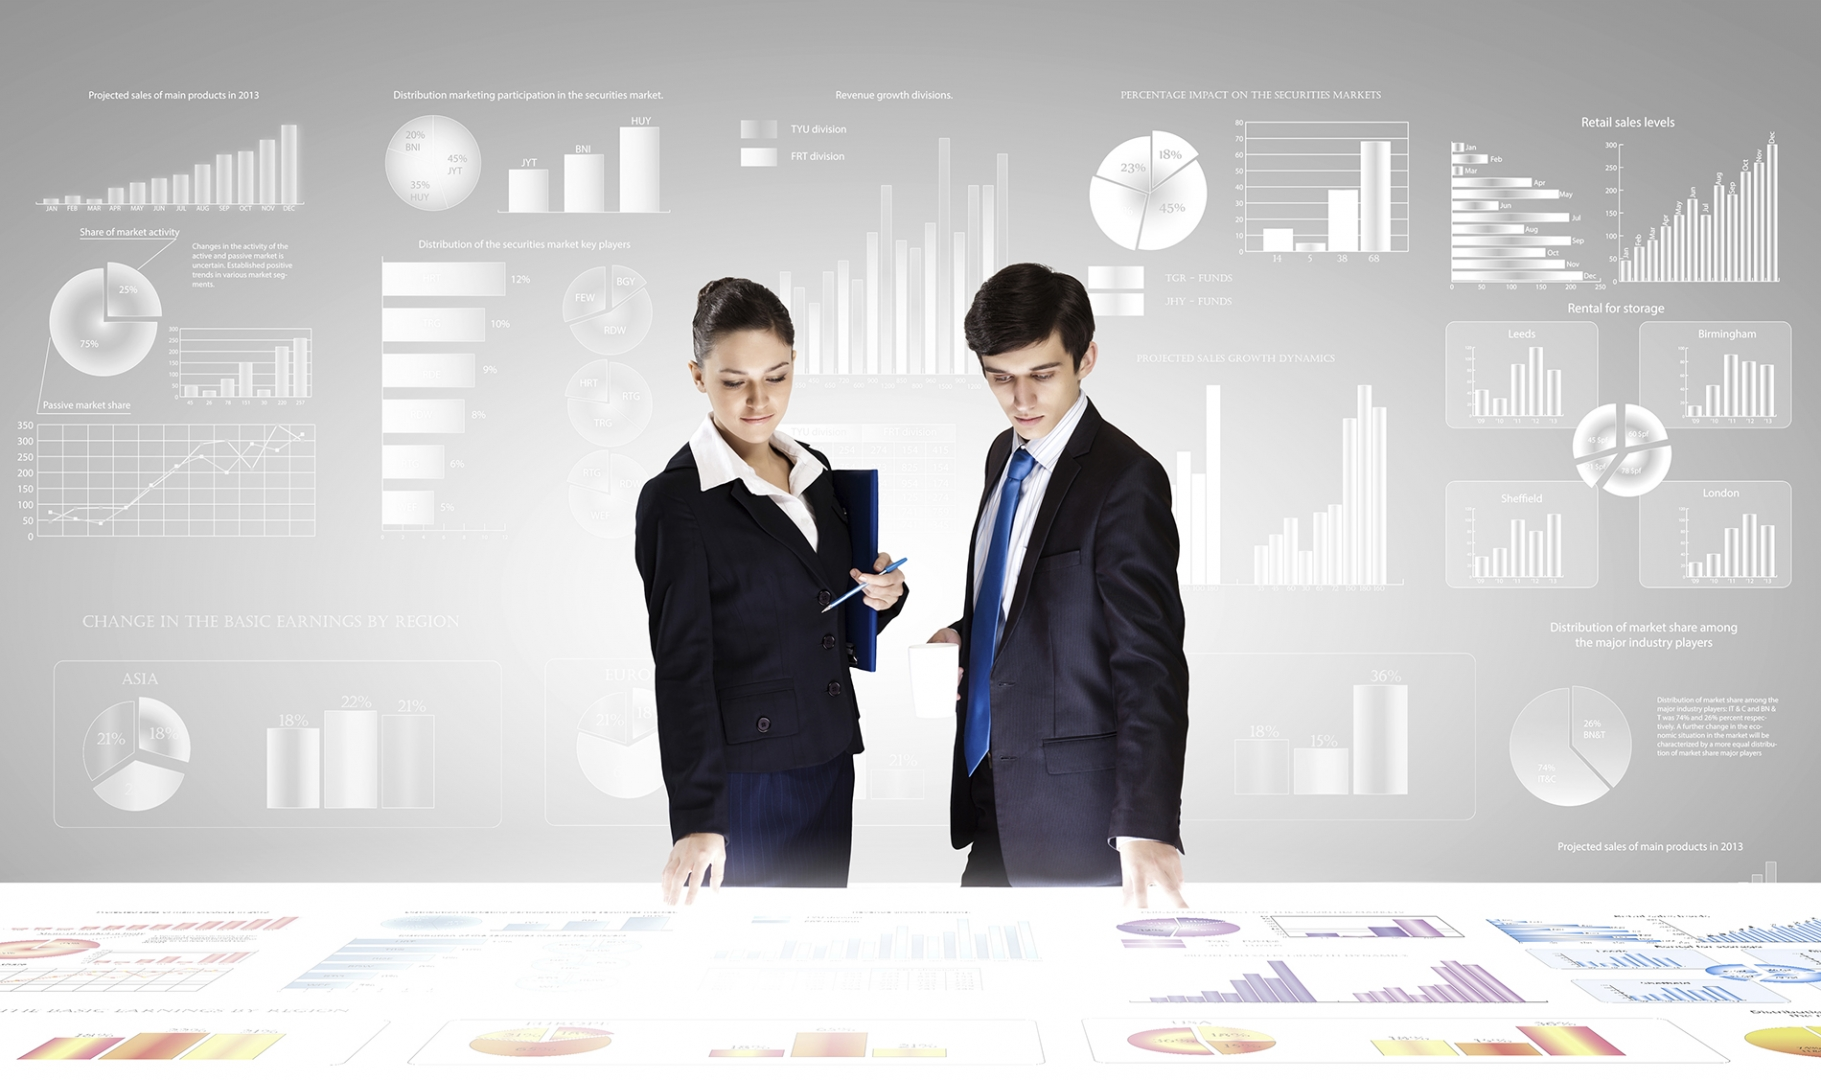 two business professionals overlooking large table filled with graphs and charts